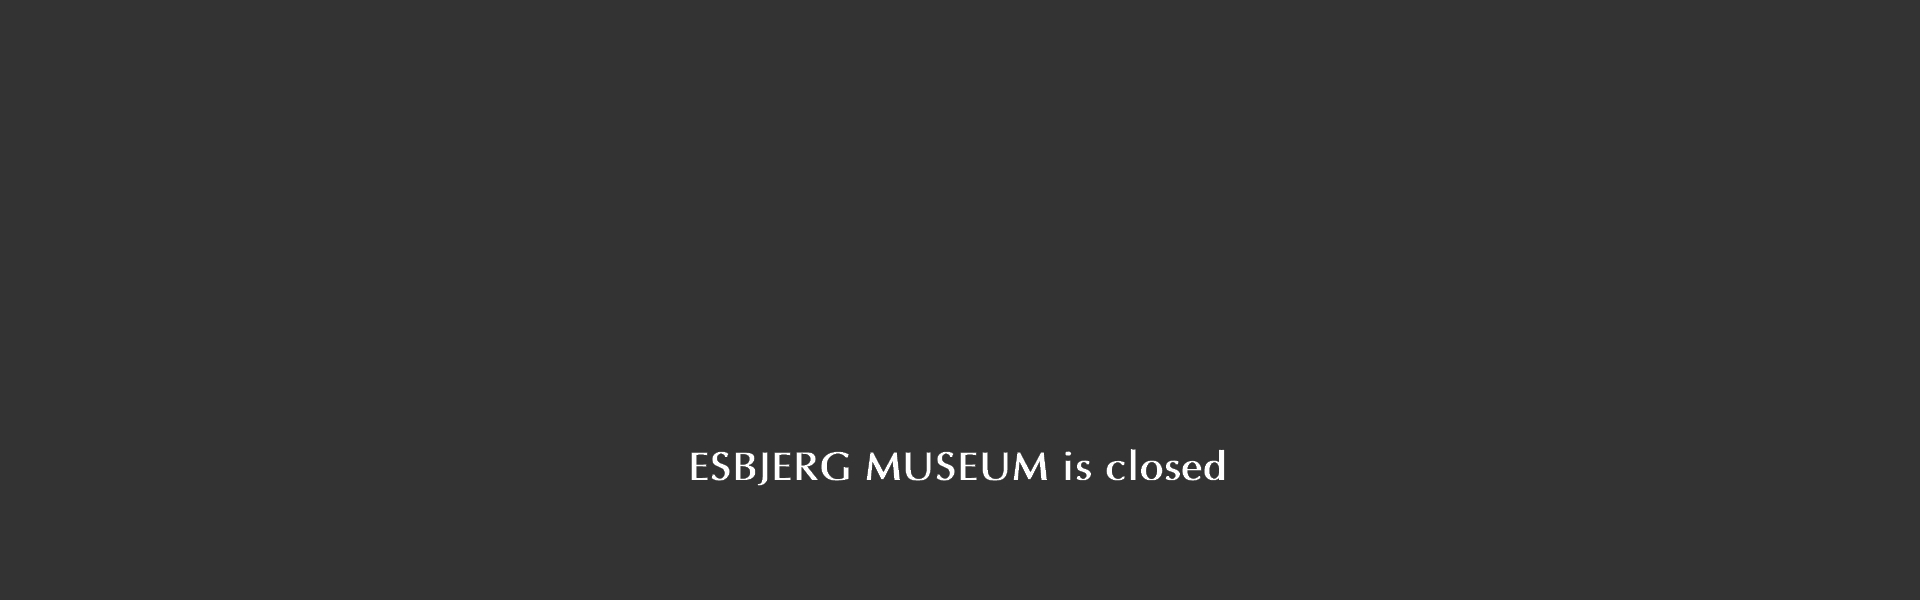 <p>The museum is closed to prevent the spreading of corona virus</p>